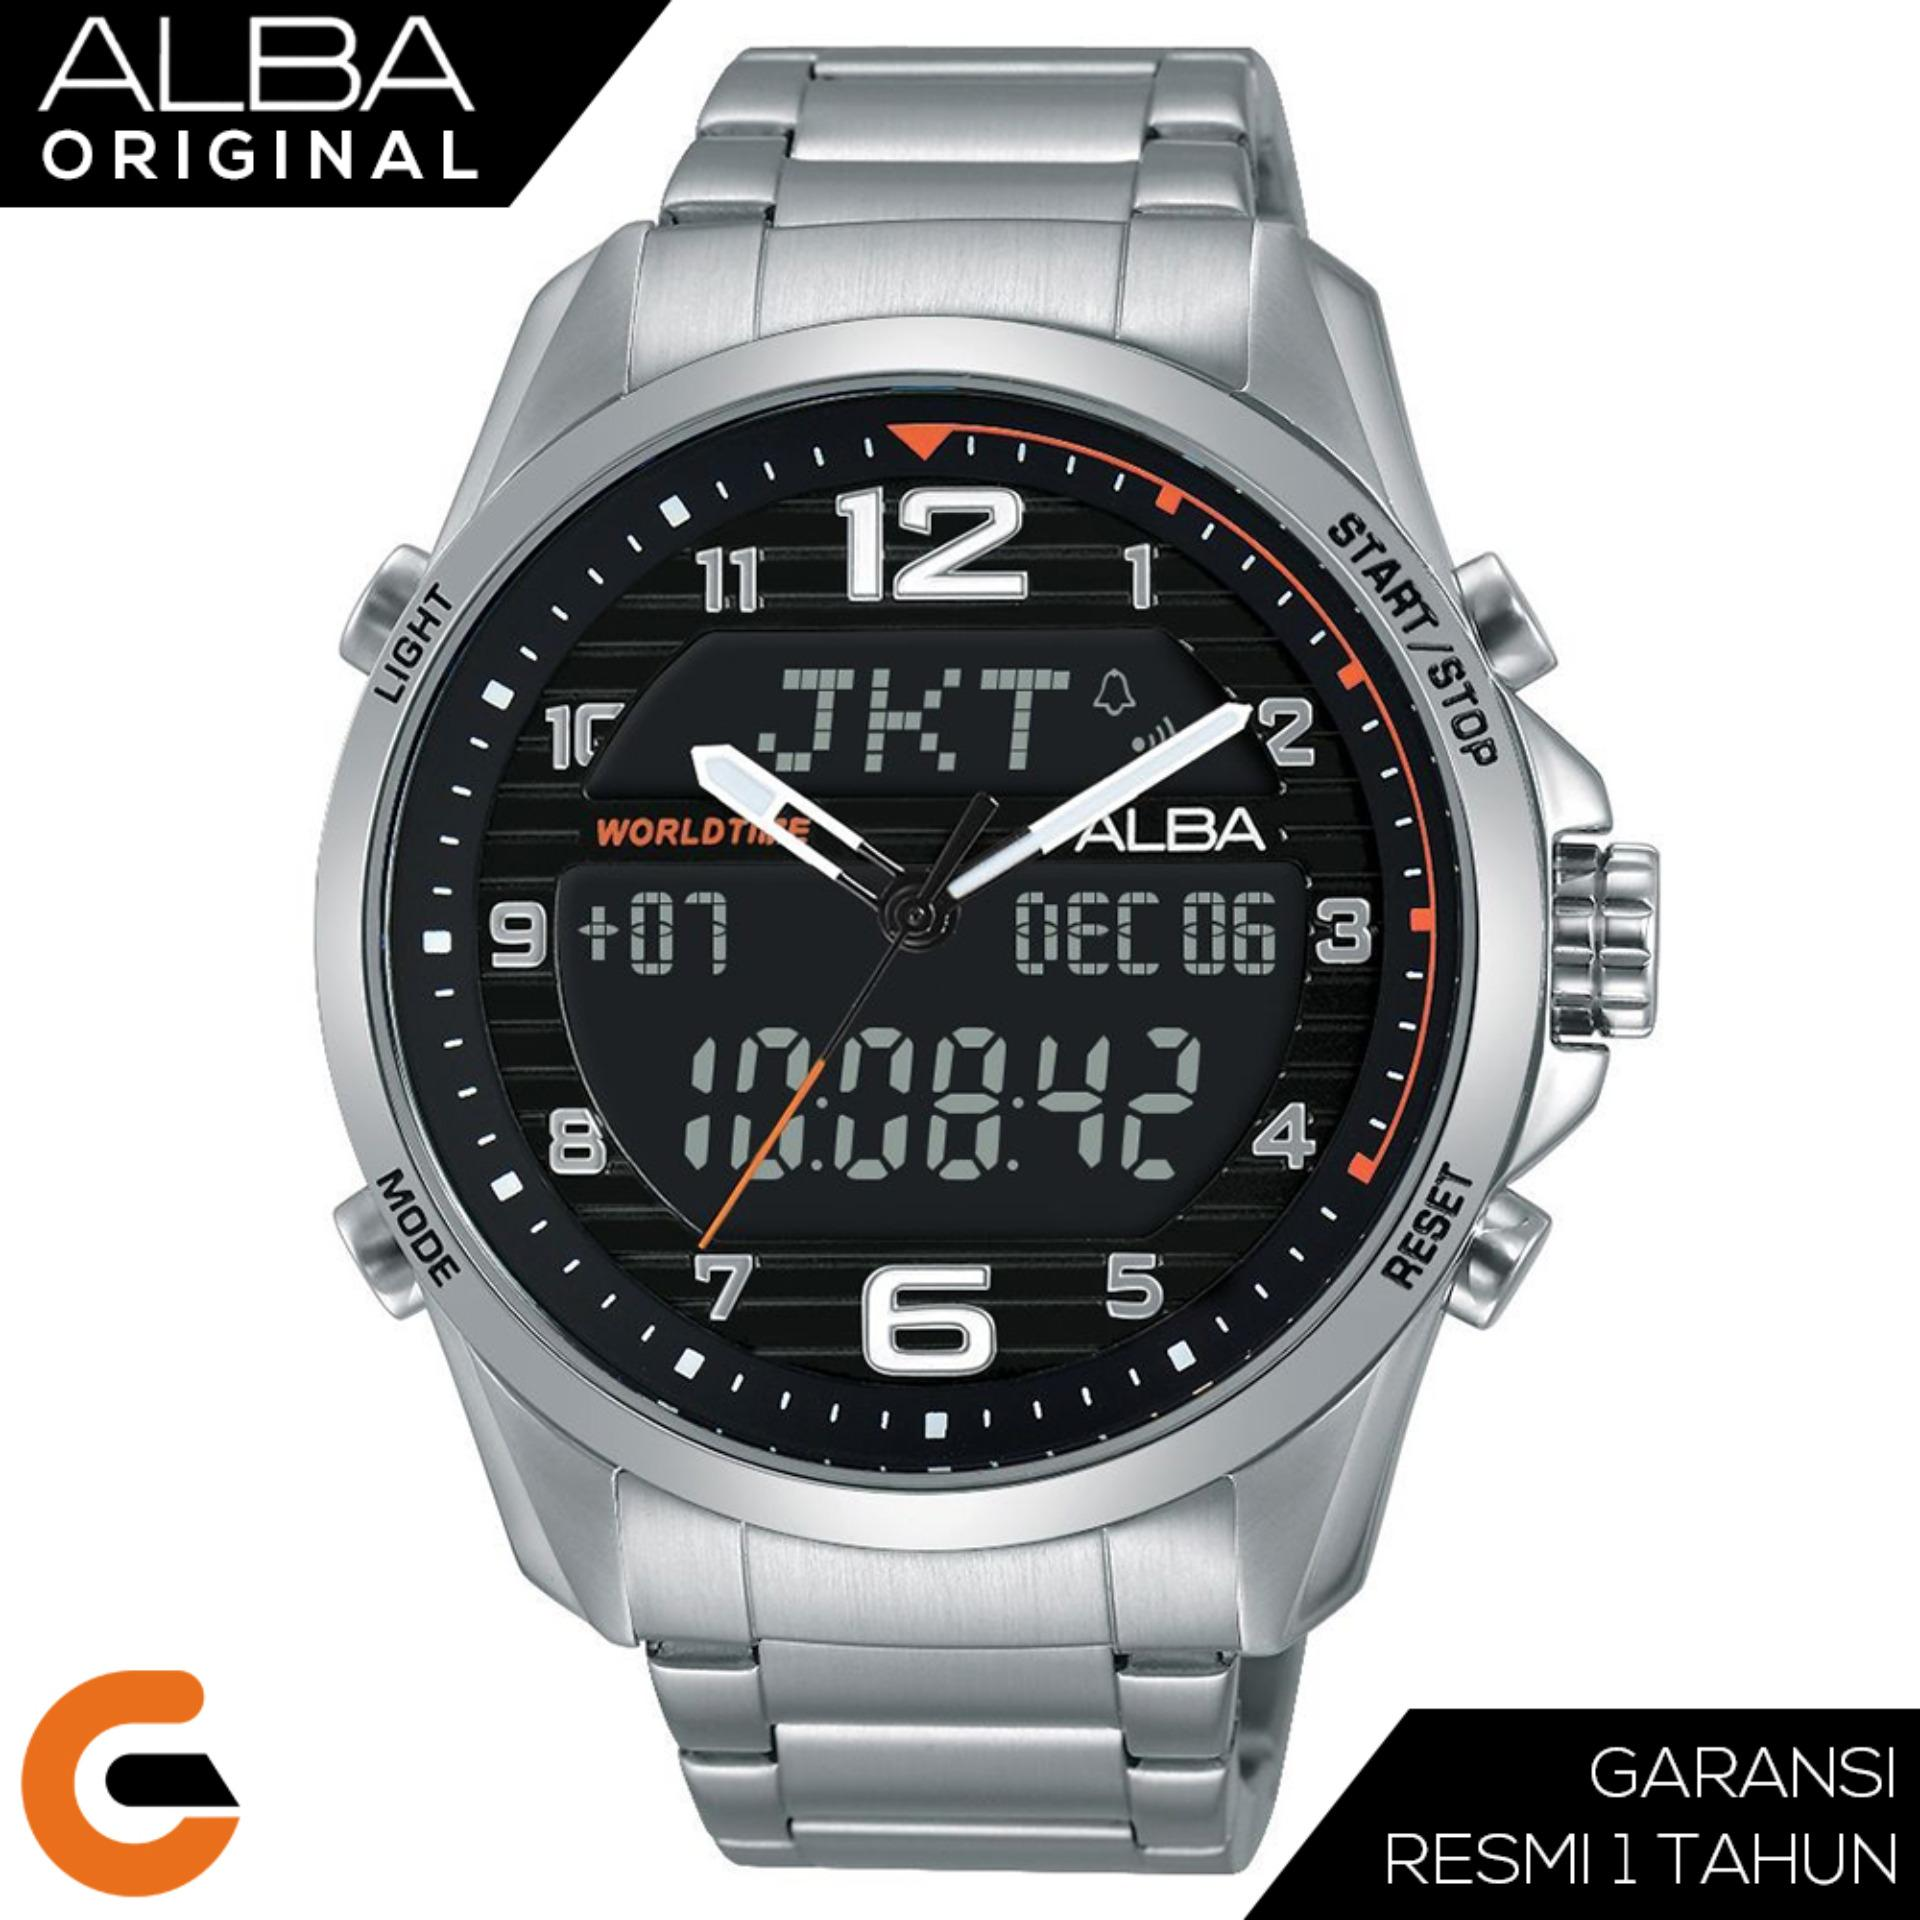 Alba Dual Time Digital Analog Jam Tangan Pria Tali Stainless / Nylon / Kulit / AZ40 Series